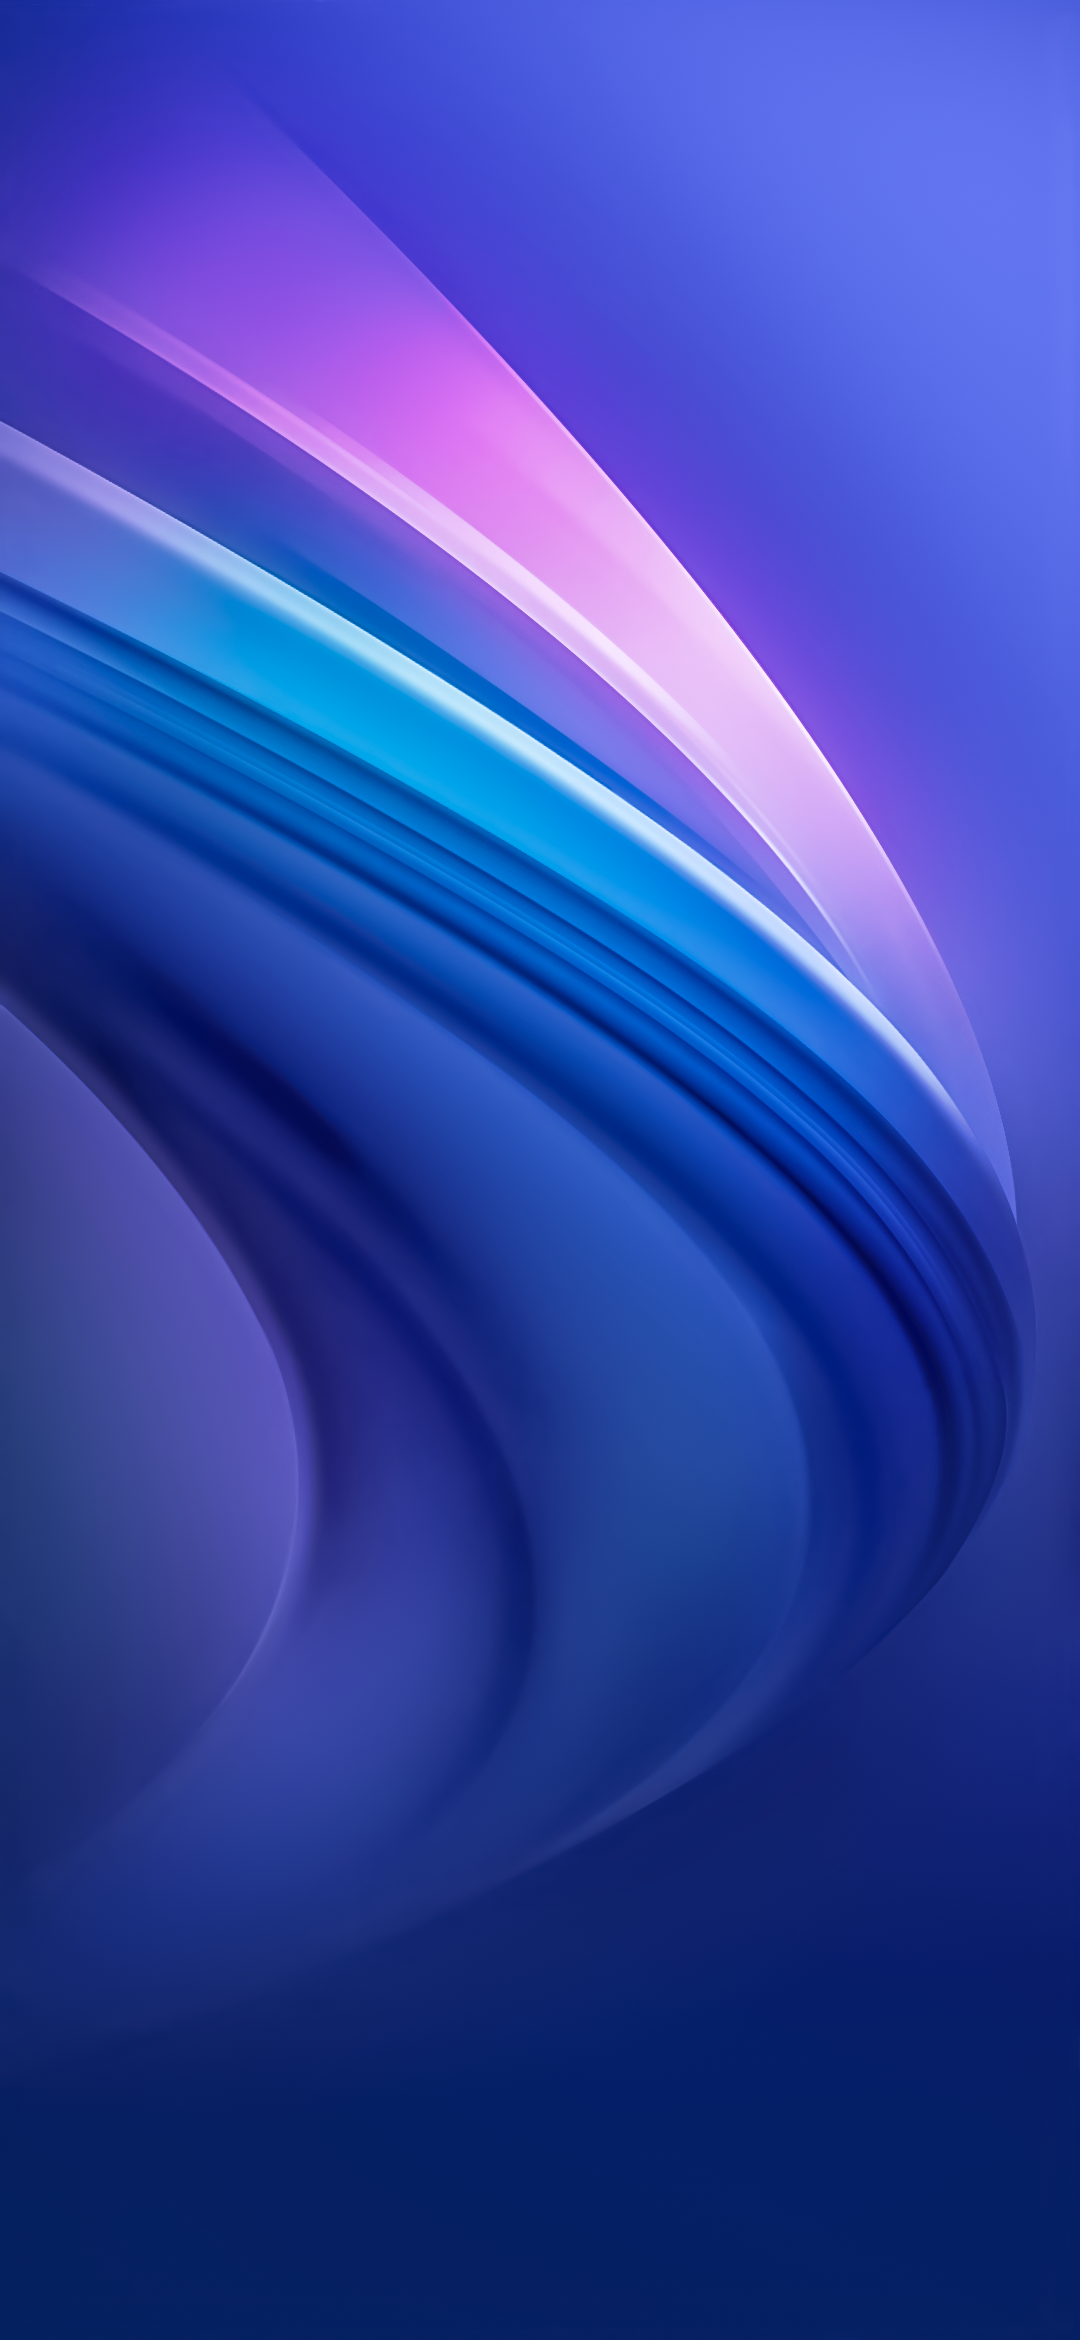 Download Vivo iQOO Neo Official Wallpaper Here! FullHD